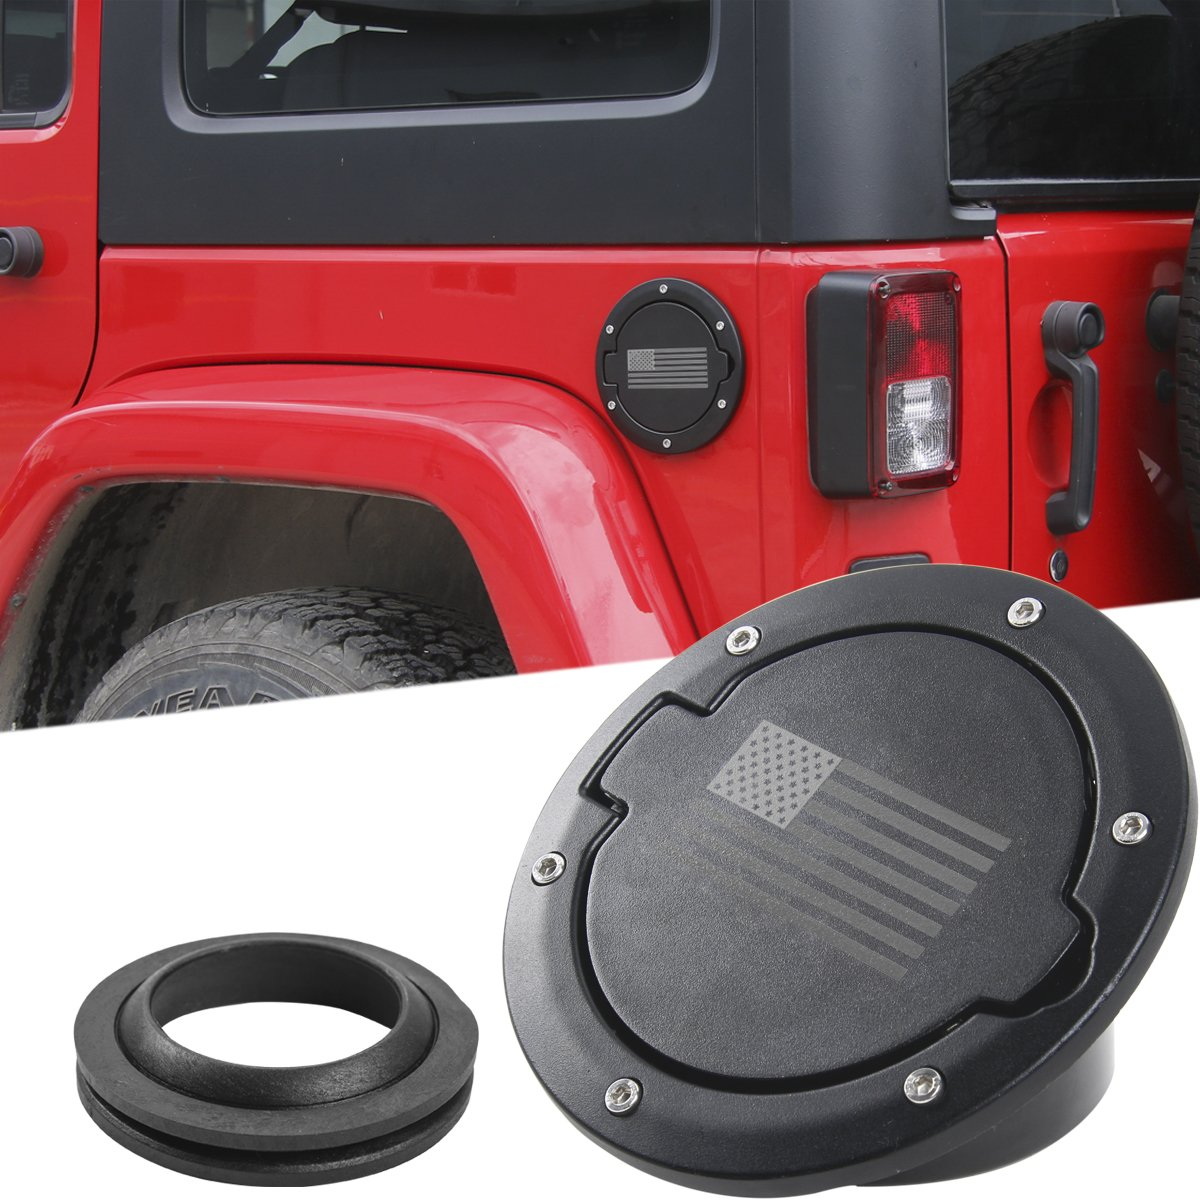 Gas Cap Cover Fuel Tank Cap Cover Replacement for 2018 Jeep Wrangler JL Sport Rubicon Sahara Unlimited (JL) RT-TCZ